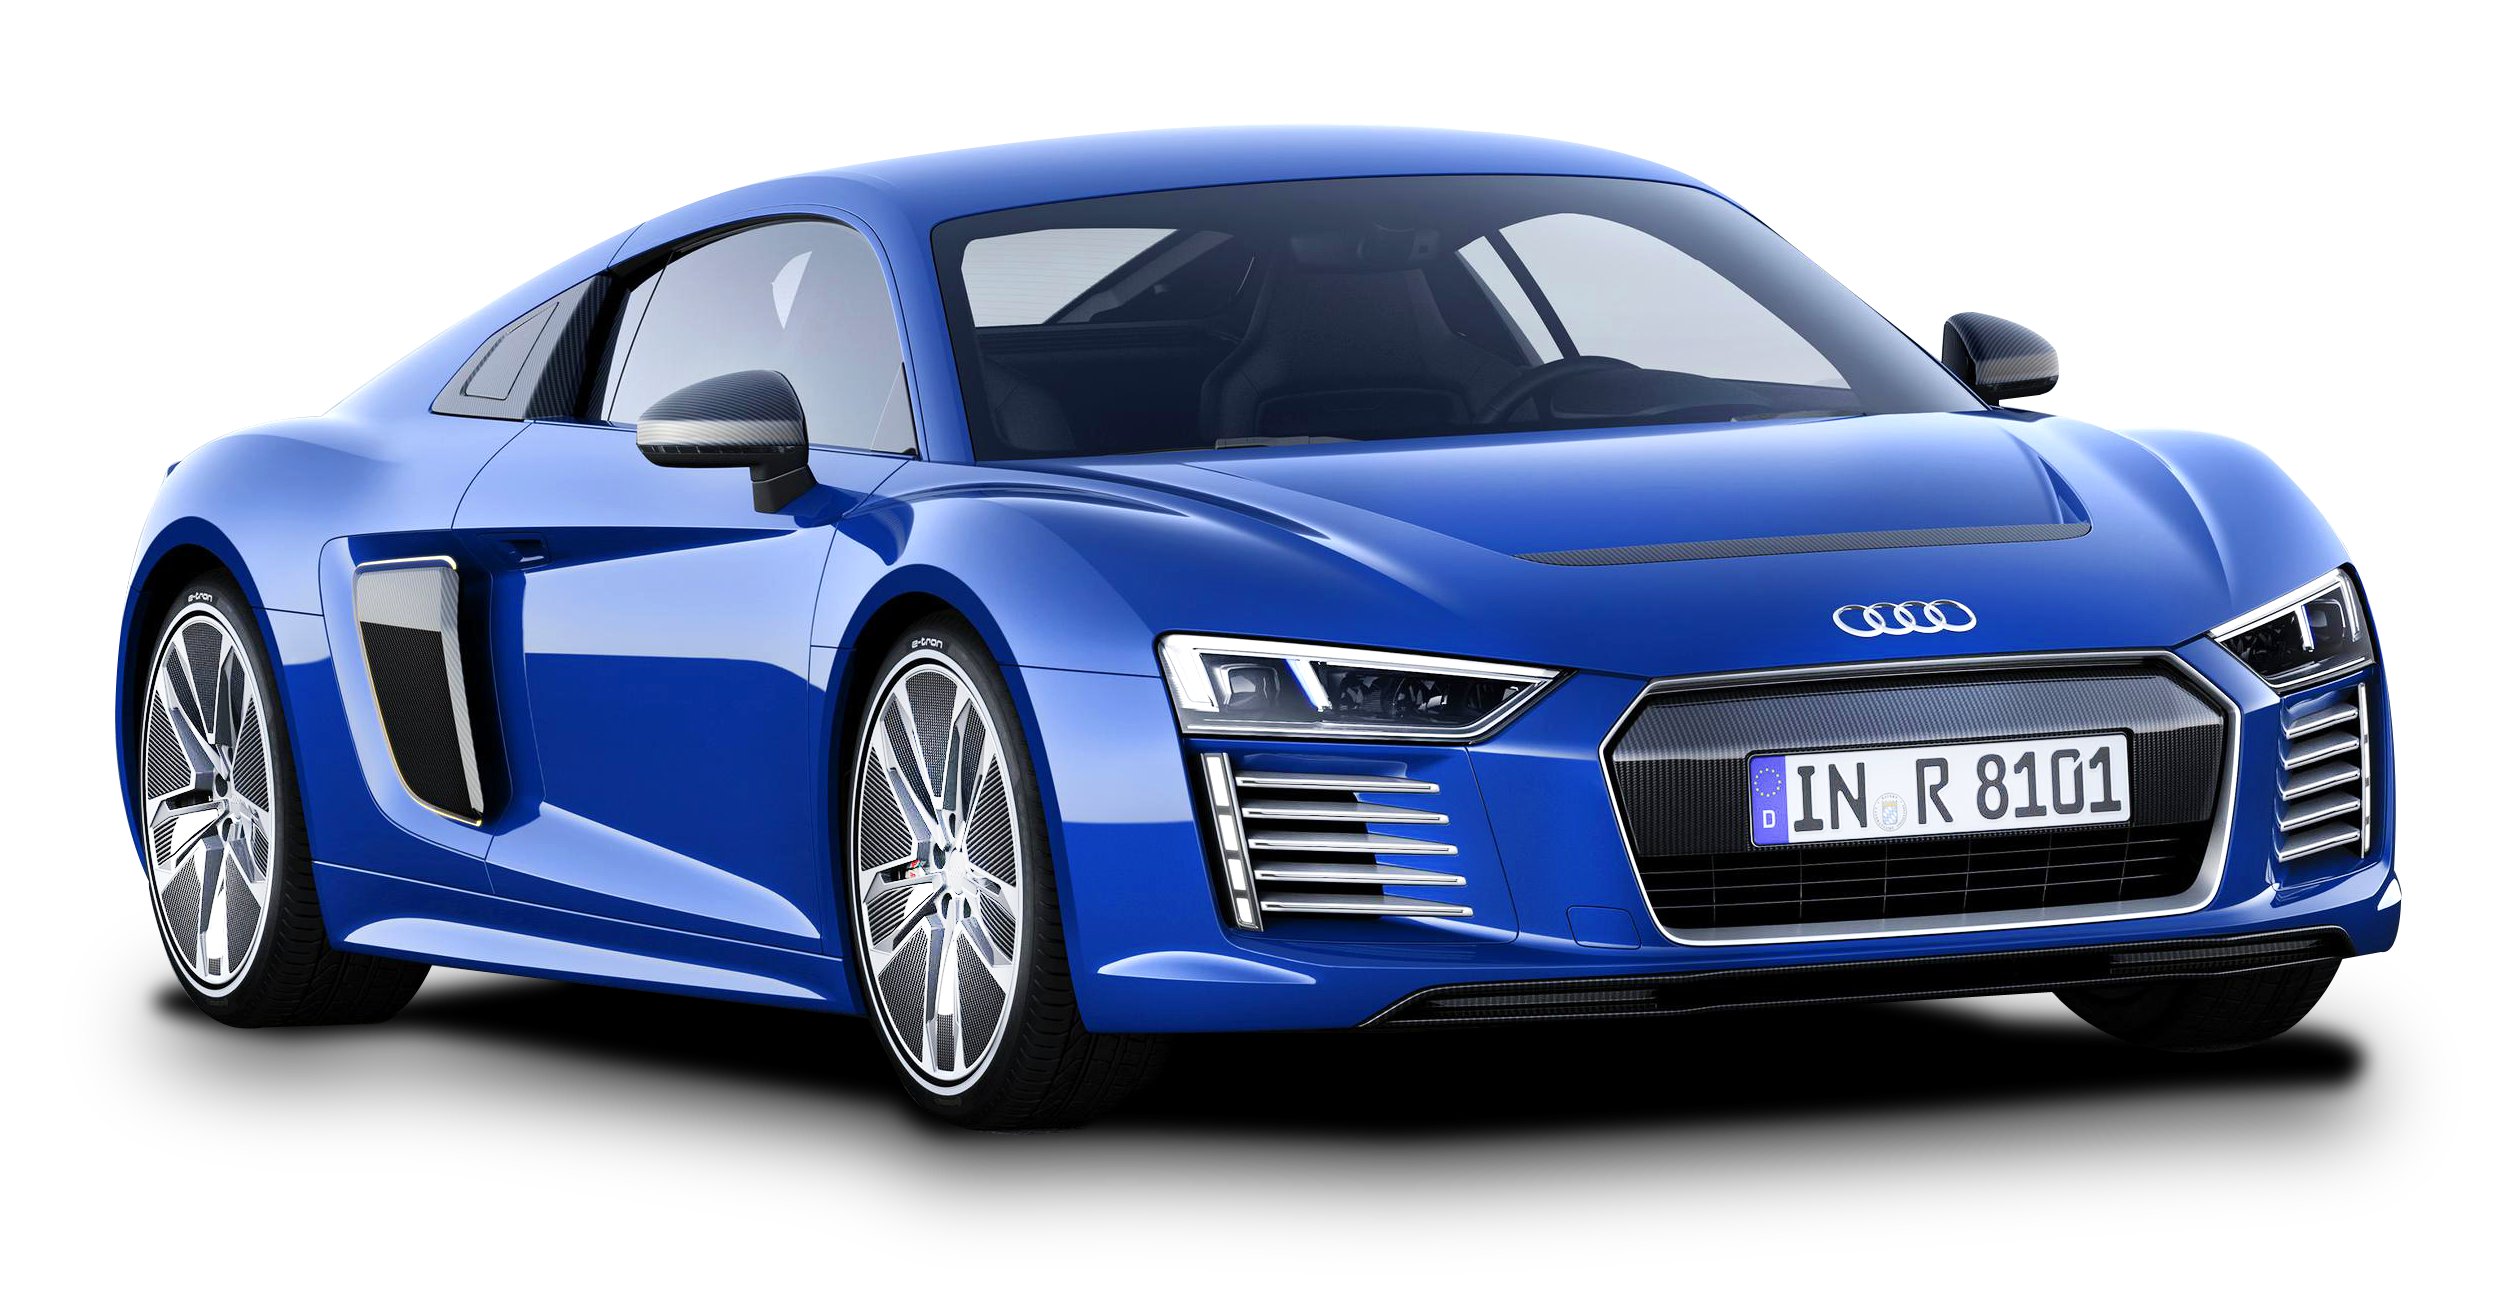 Png Hd Images Of Cars Transparent Hd Images Of Cars Png Images